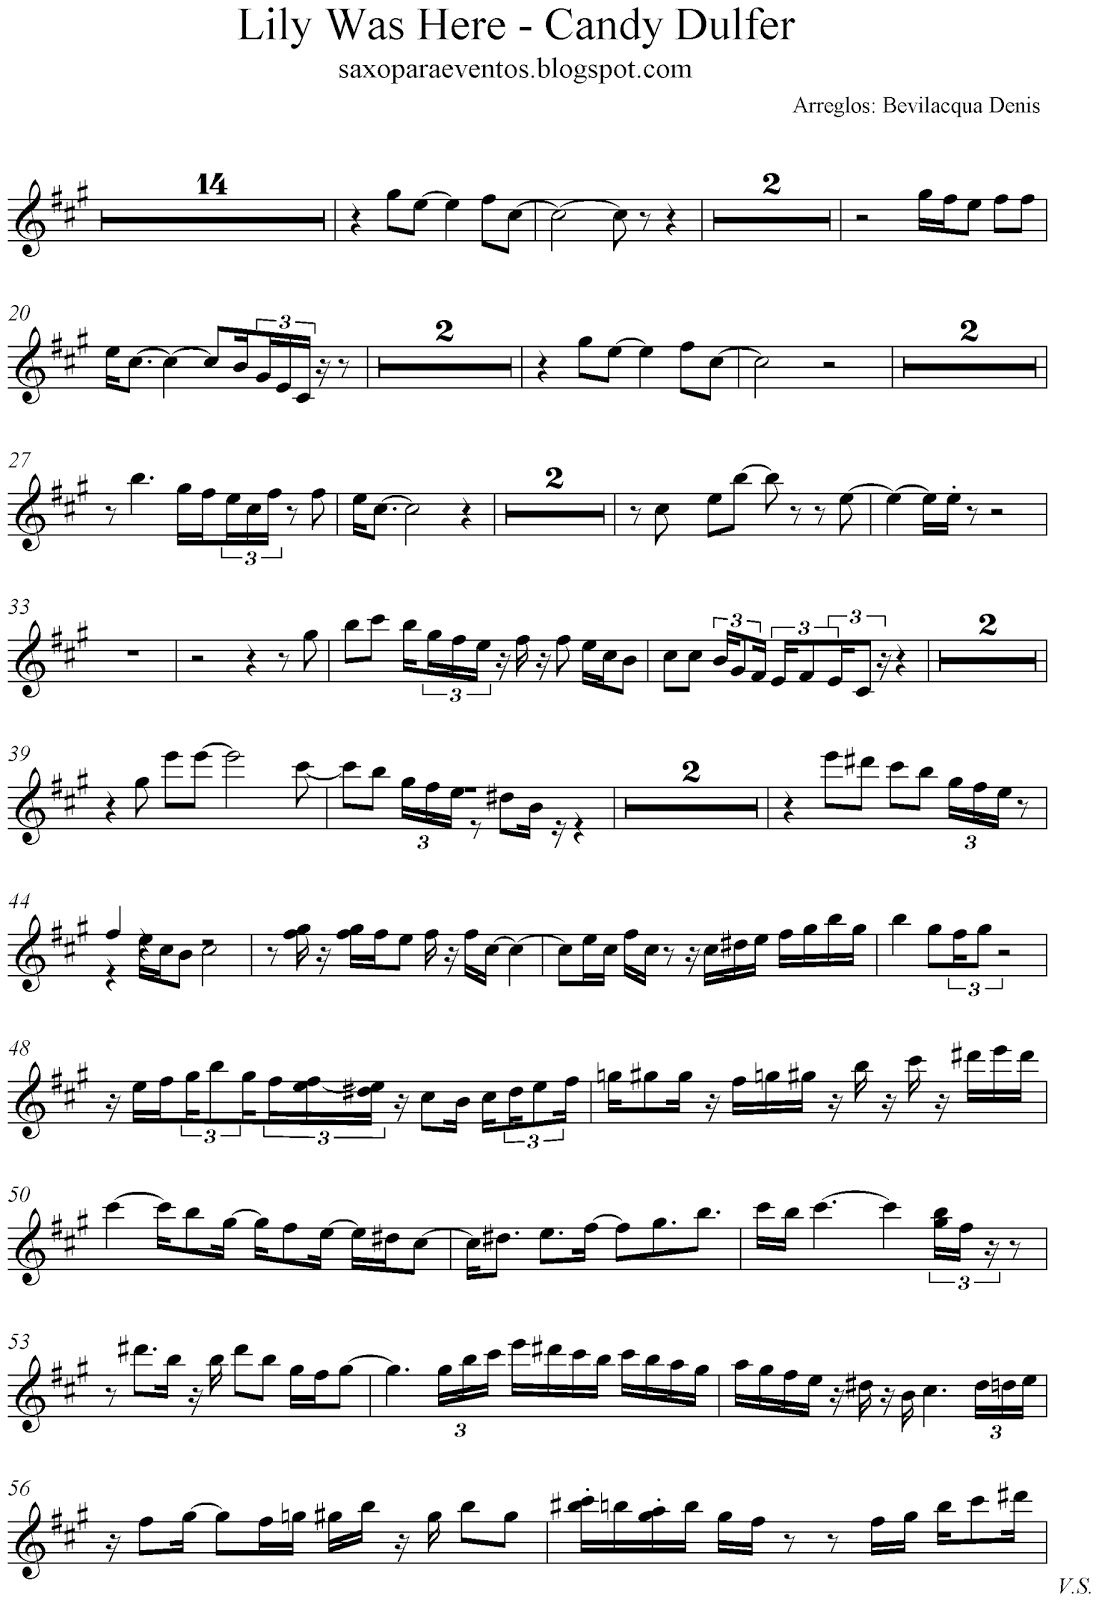 Lily was Here - Candy Dulfer score and track (Sheet music free